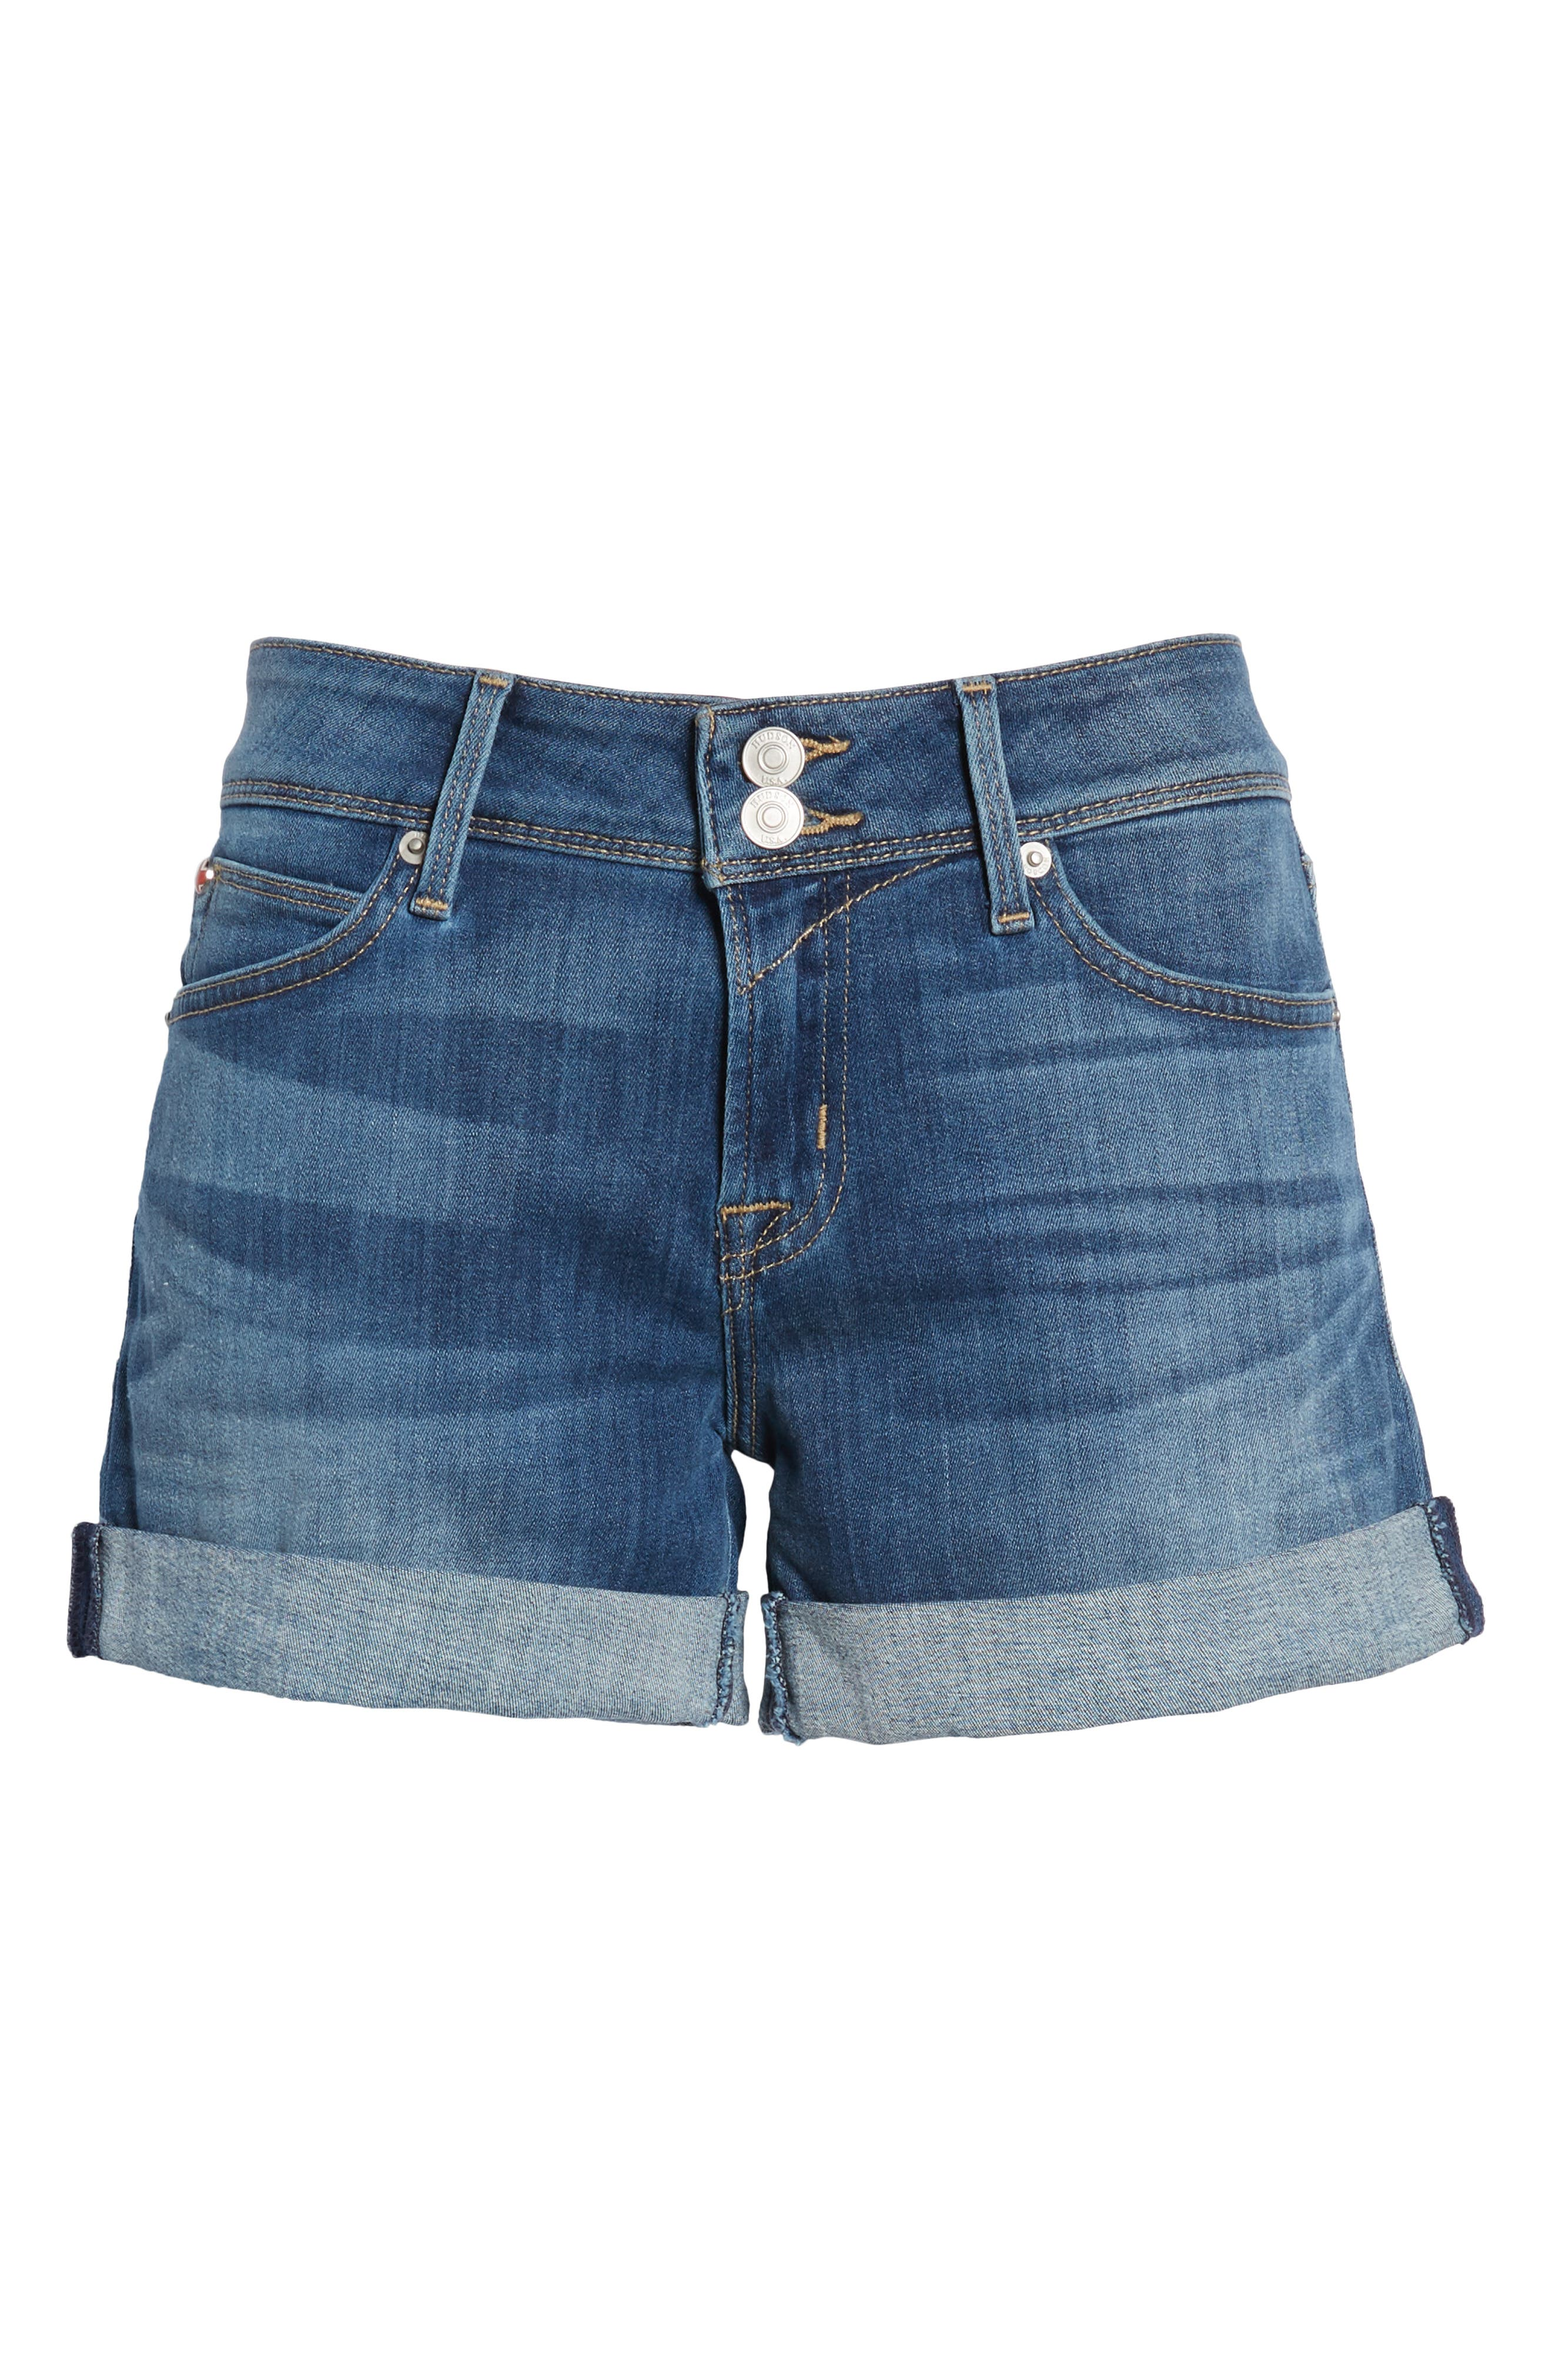 'Croxley' Cuffed Denim Shorts,                             Alternate thumbnail 25, color,